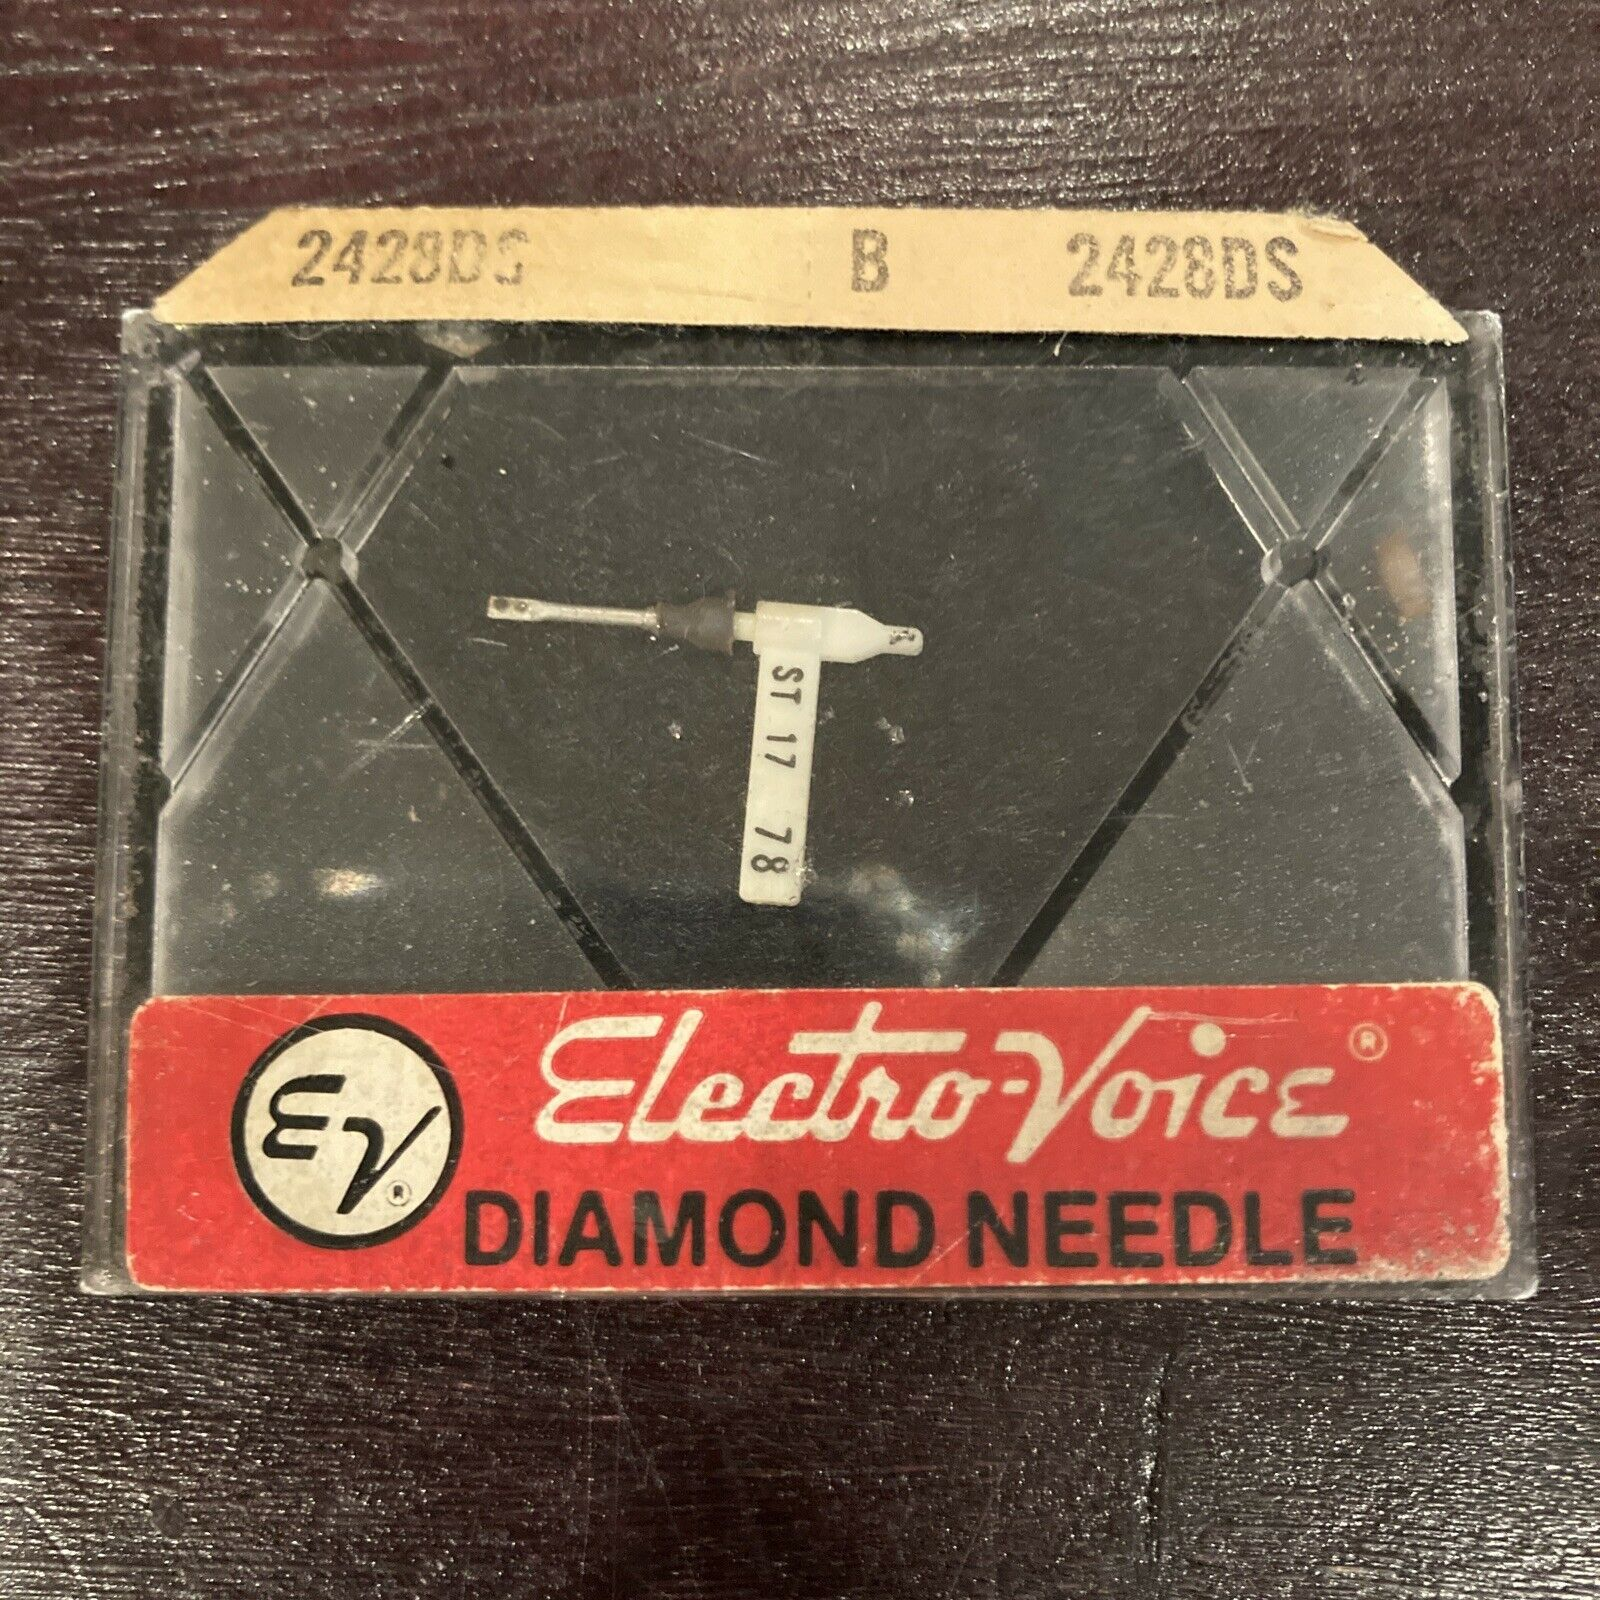 Electro-voice EV diamond needle 2428ds New Old stock